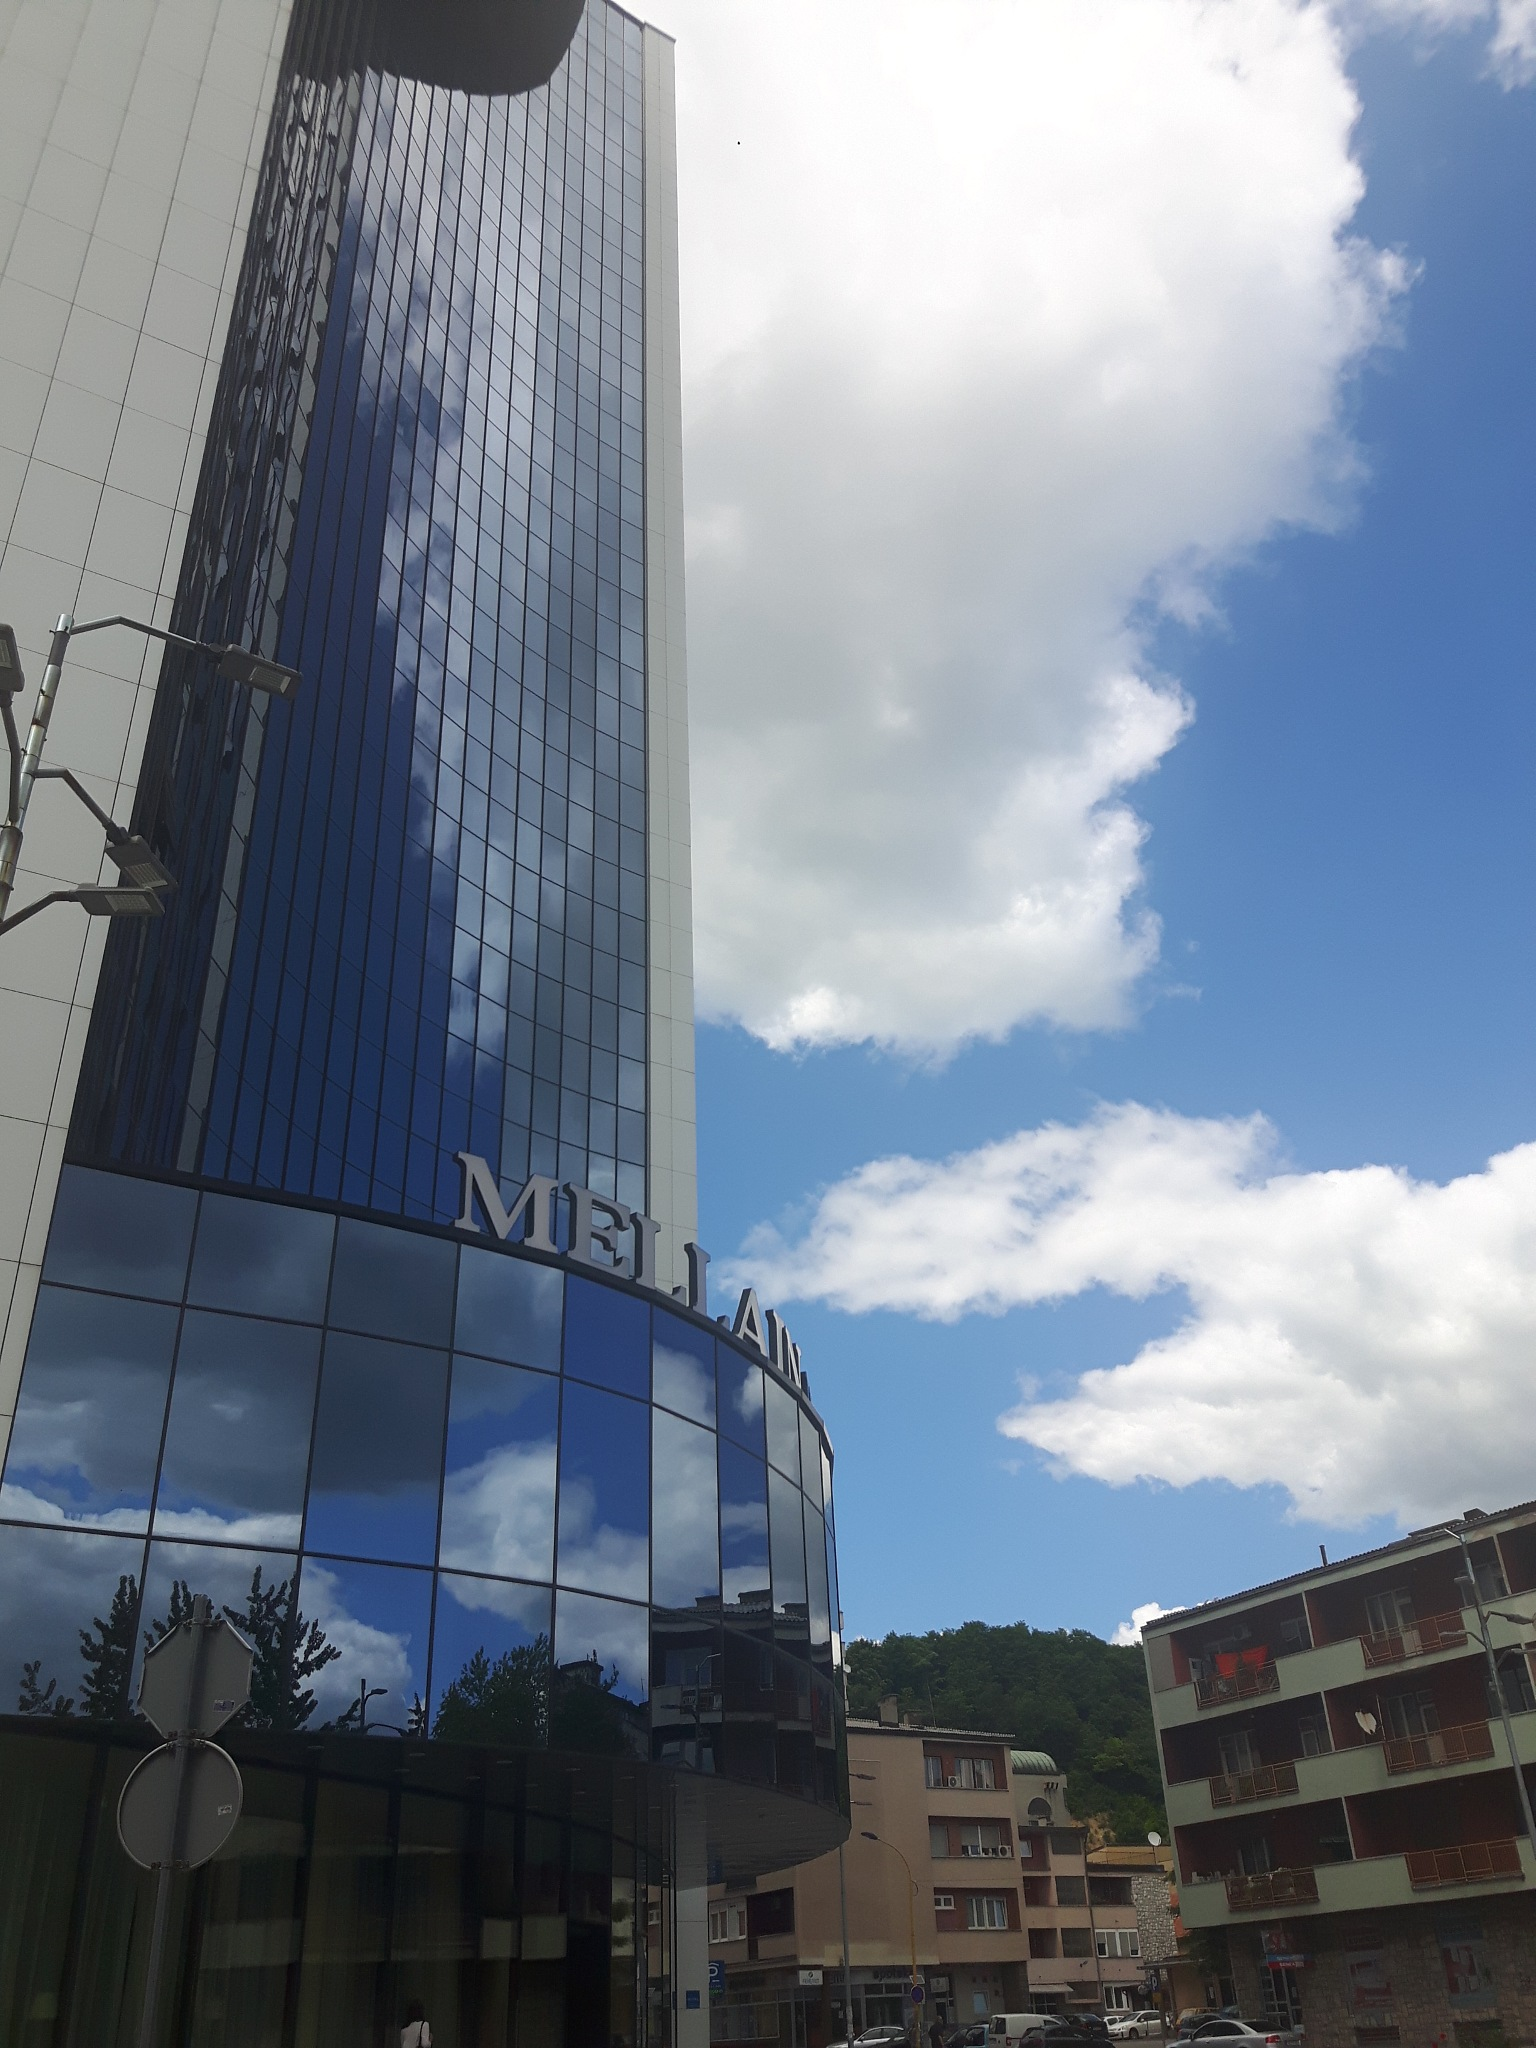 Sky and sky reflections on hotel Mellain by Mevludin_Hasanovic